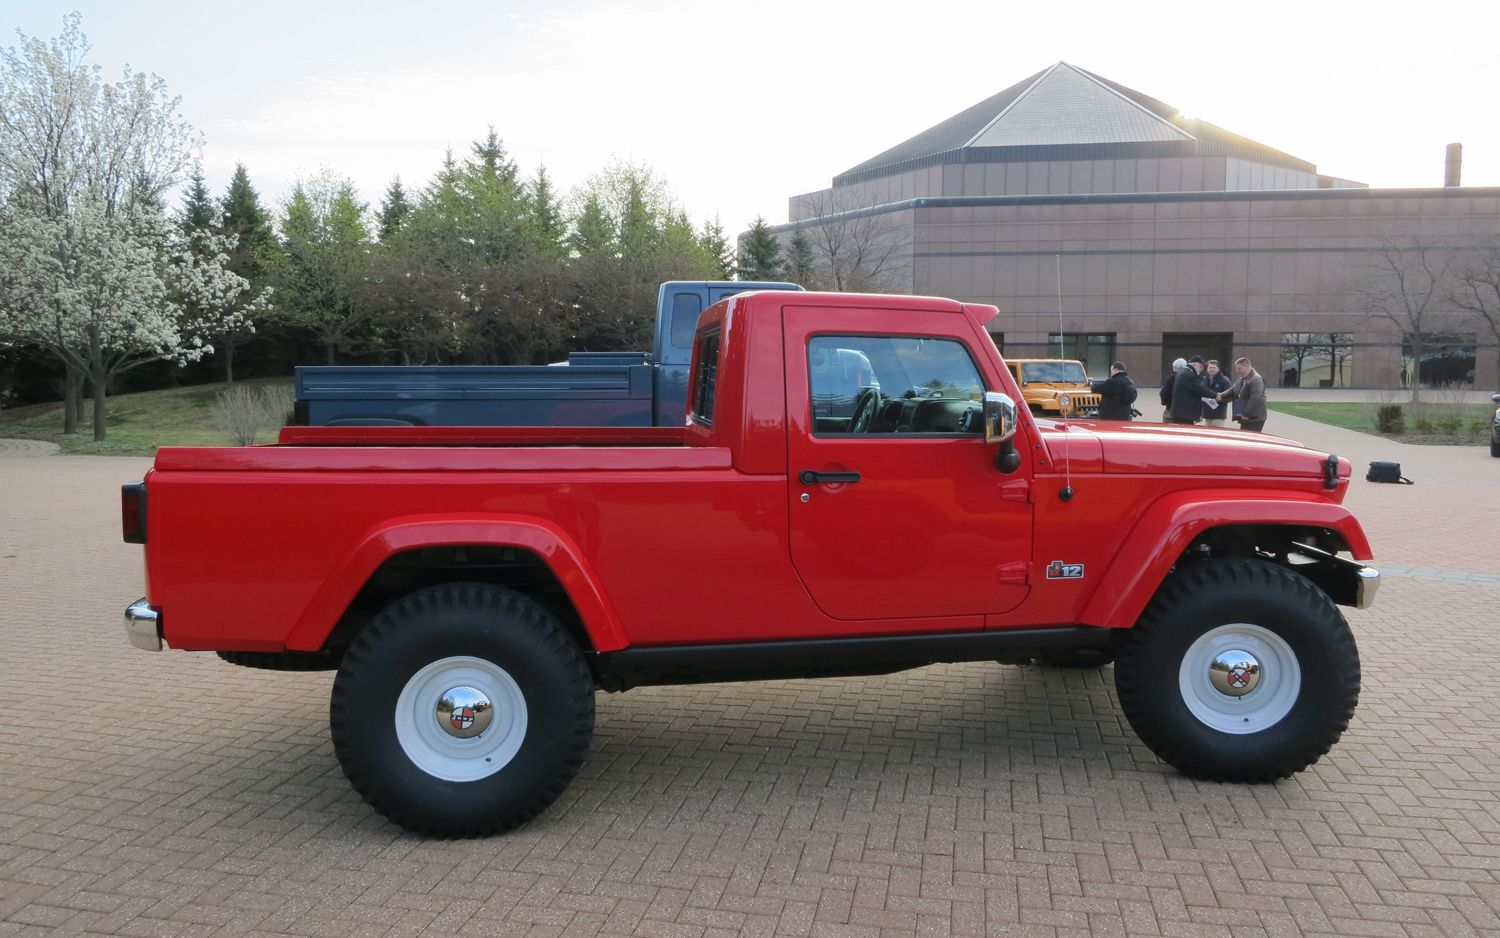 Jeep Wrangler Msrp >> Jeep CEO Hints At Diesel, Pickup Options For Next-Gen Wrangler